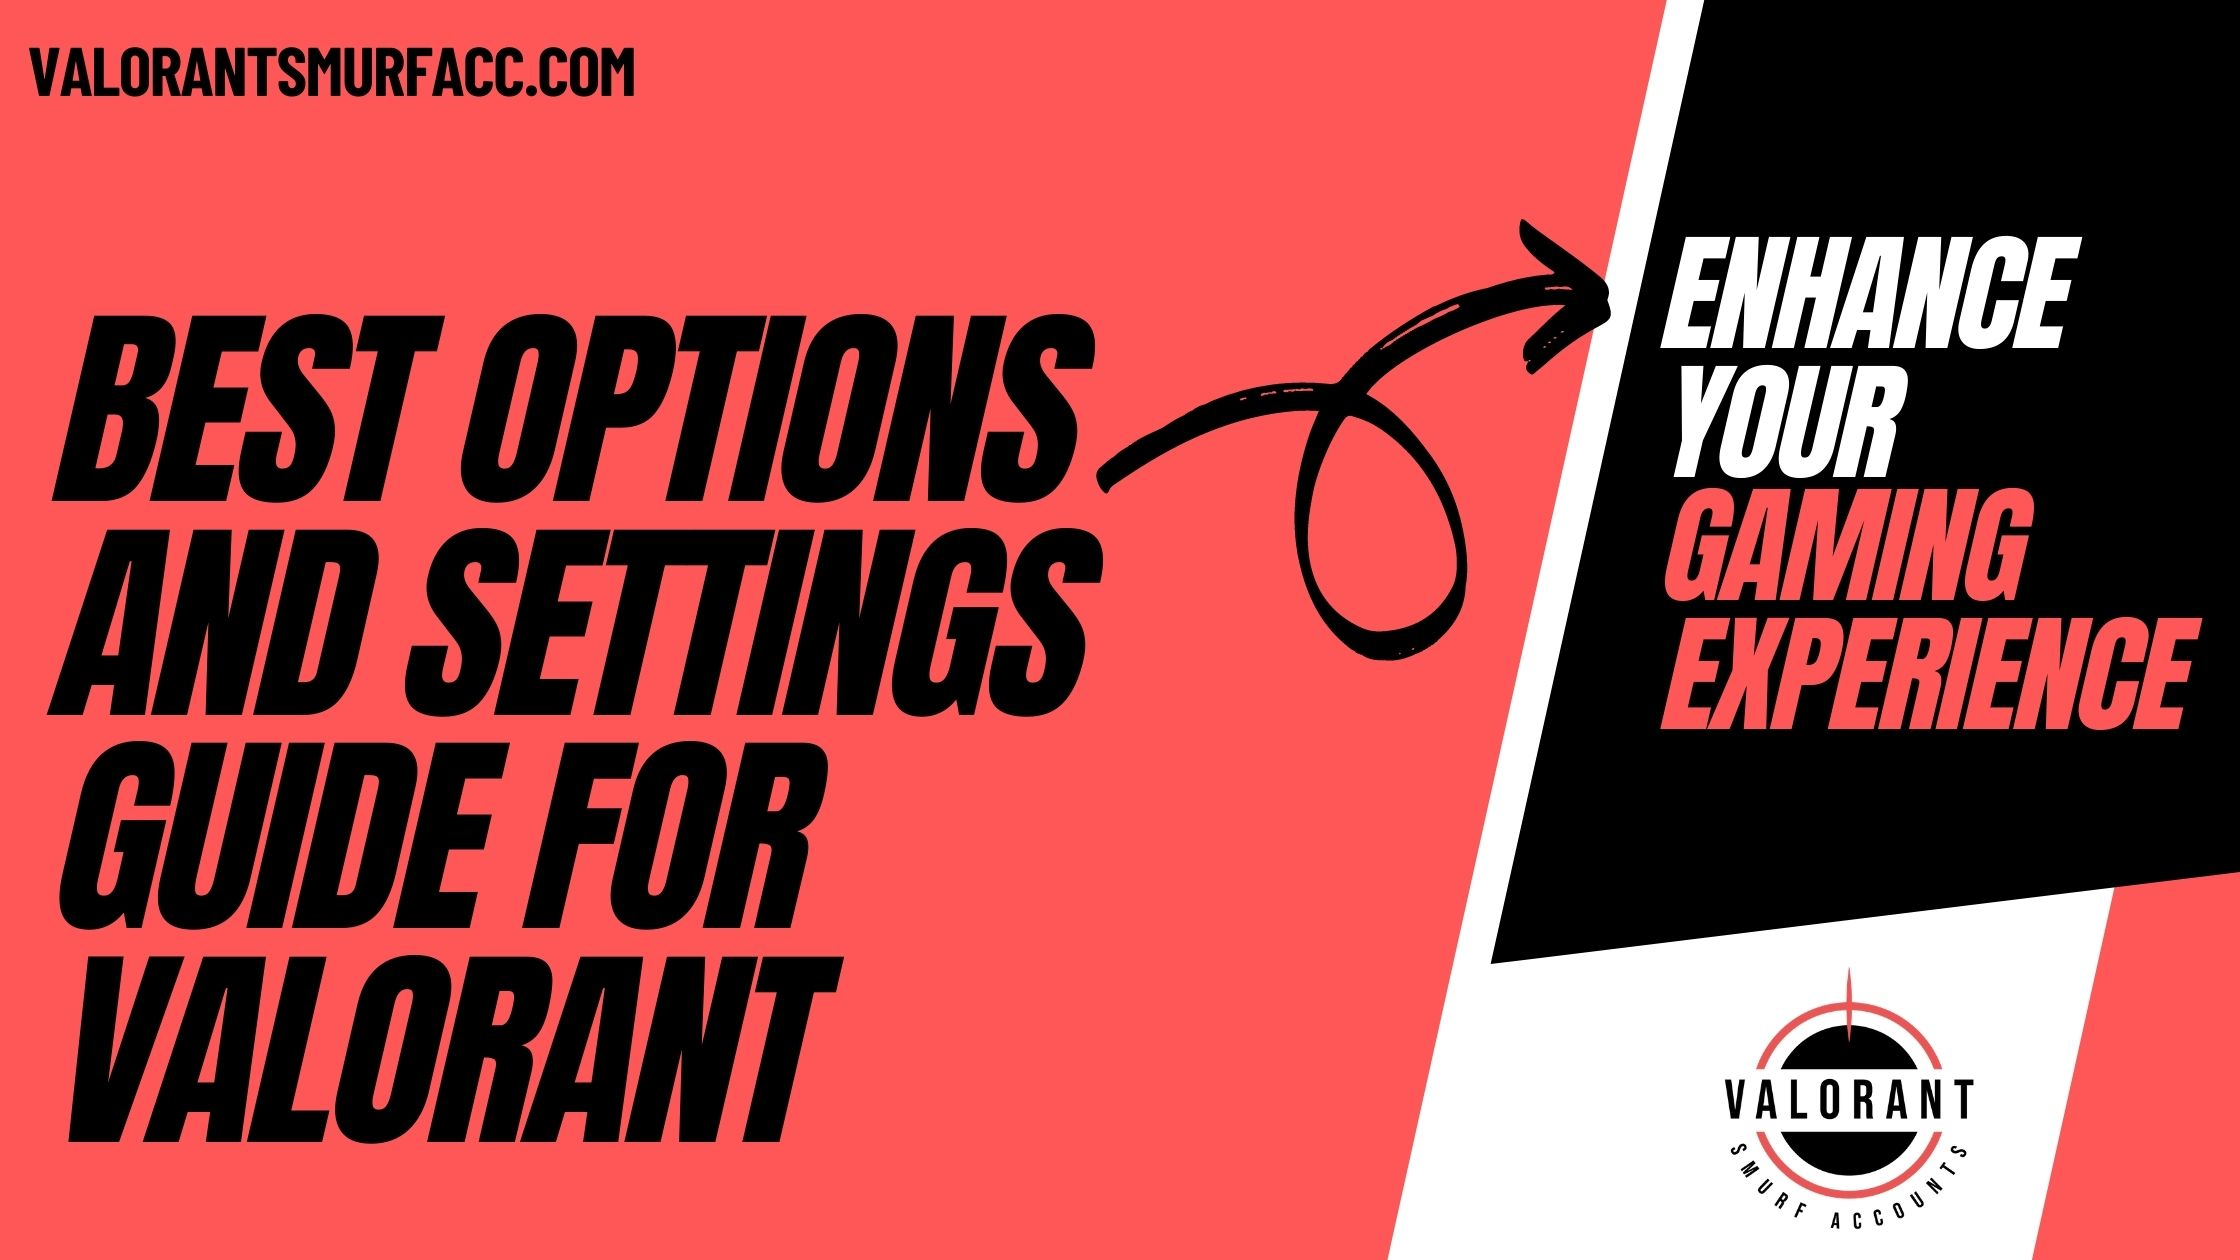 Best Options And Settings Guide for Valorant